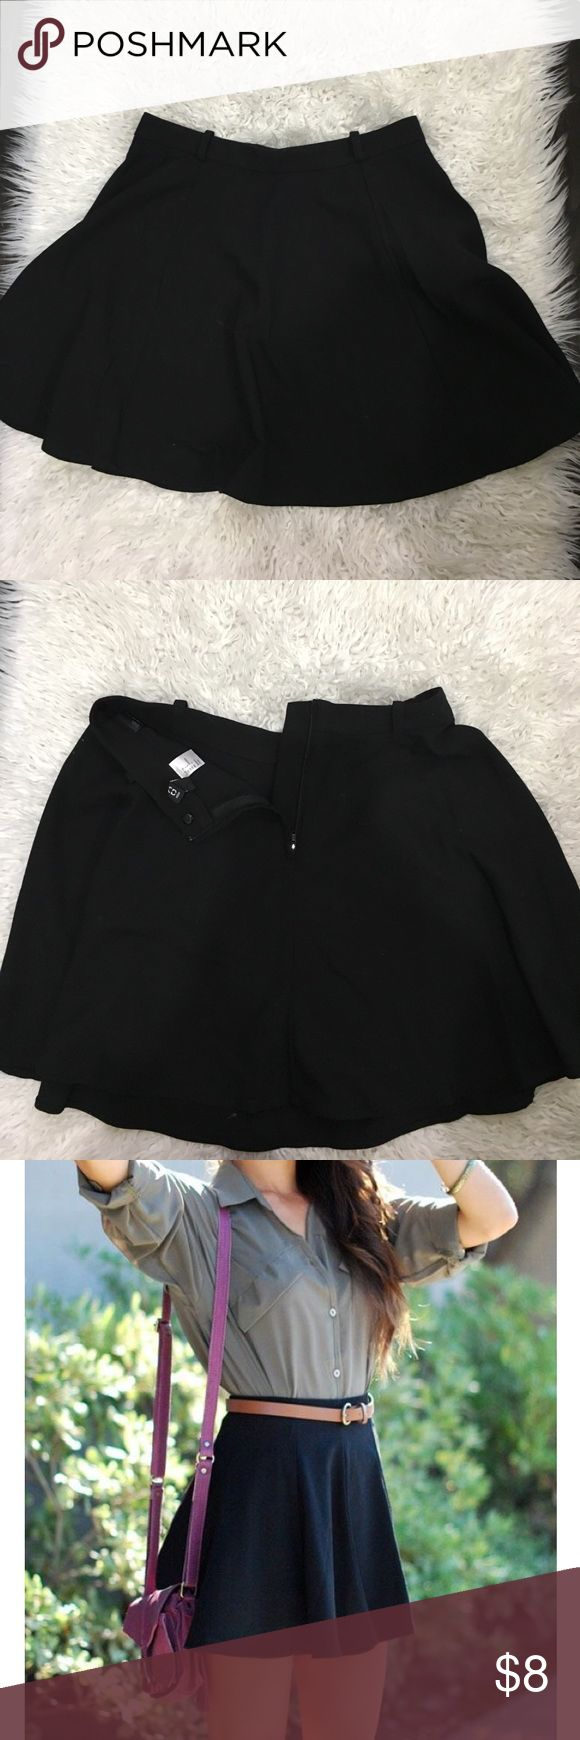 Black skater skirt with belt loops Basic black skater skirt with belt looks perfect for summer! Hardly worn- no damage ! H&M Skirts Circle & Skater